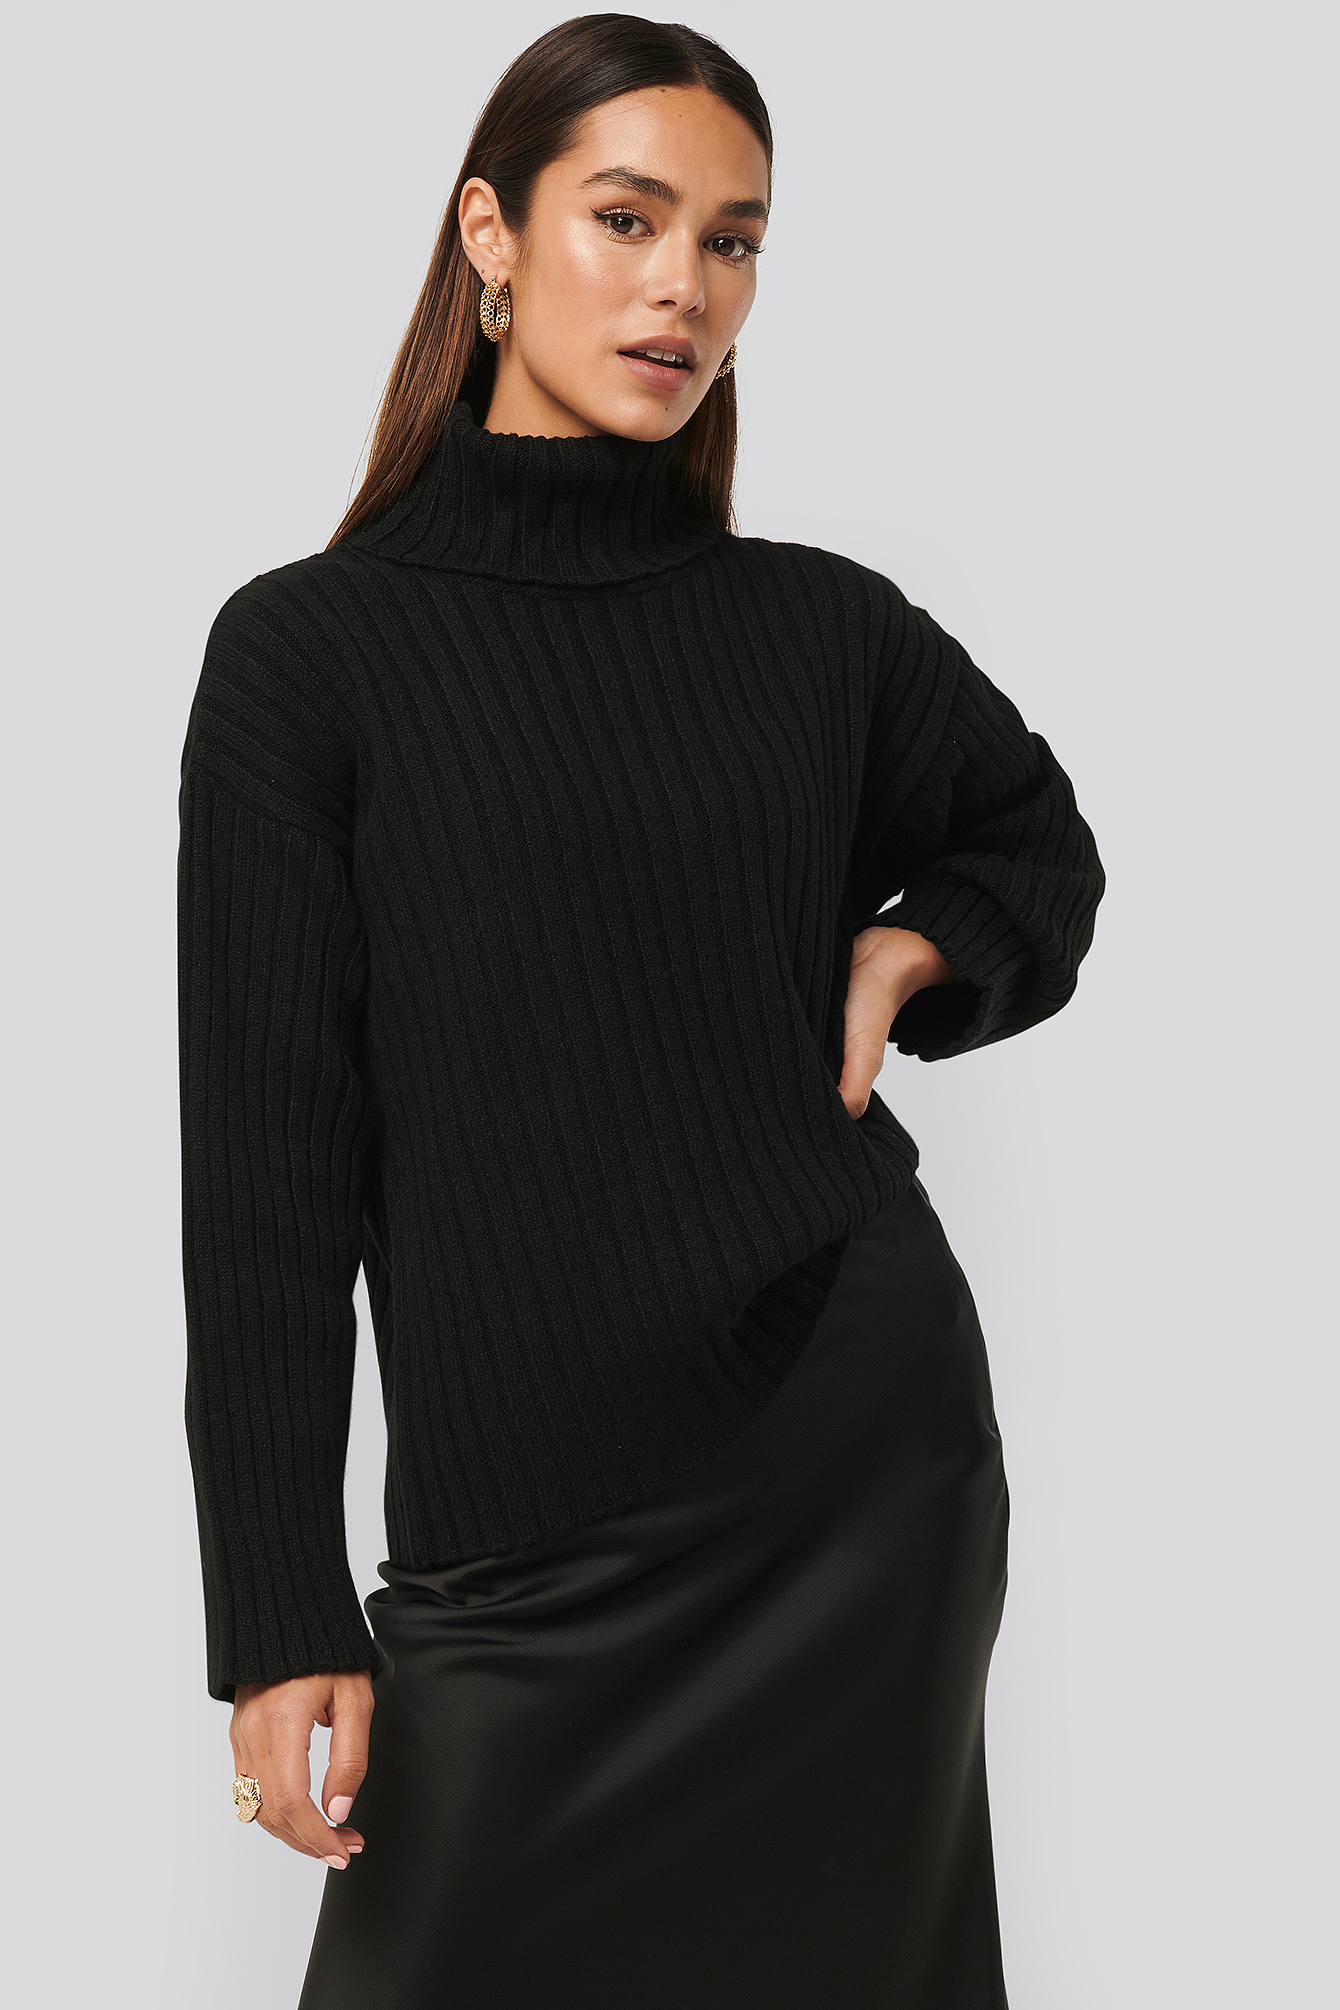 Black Oversized Ribbed Knitted Sweater